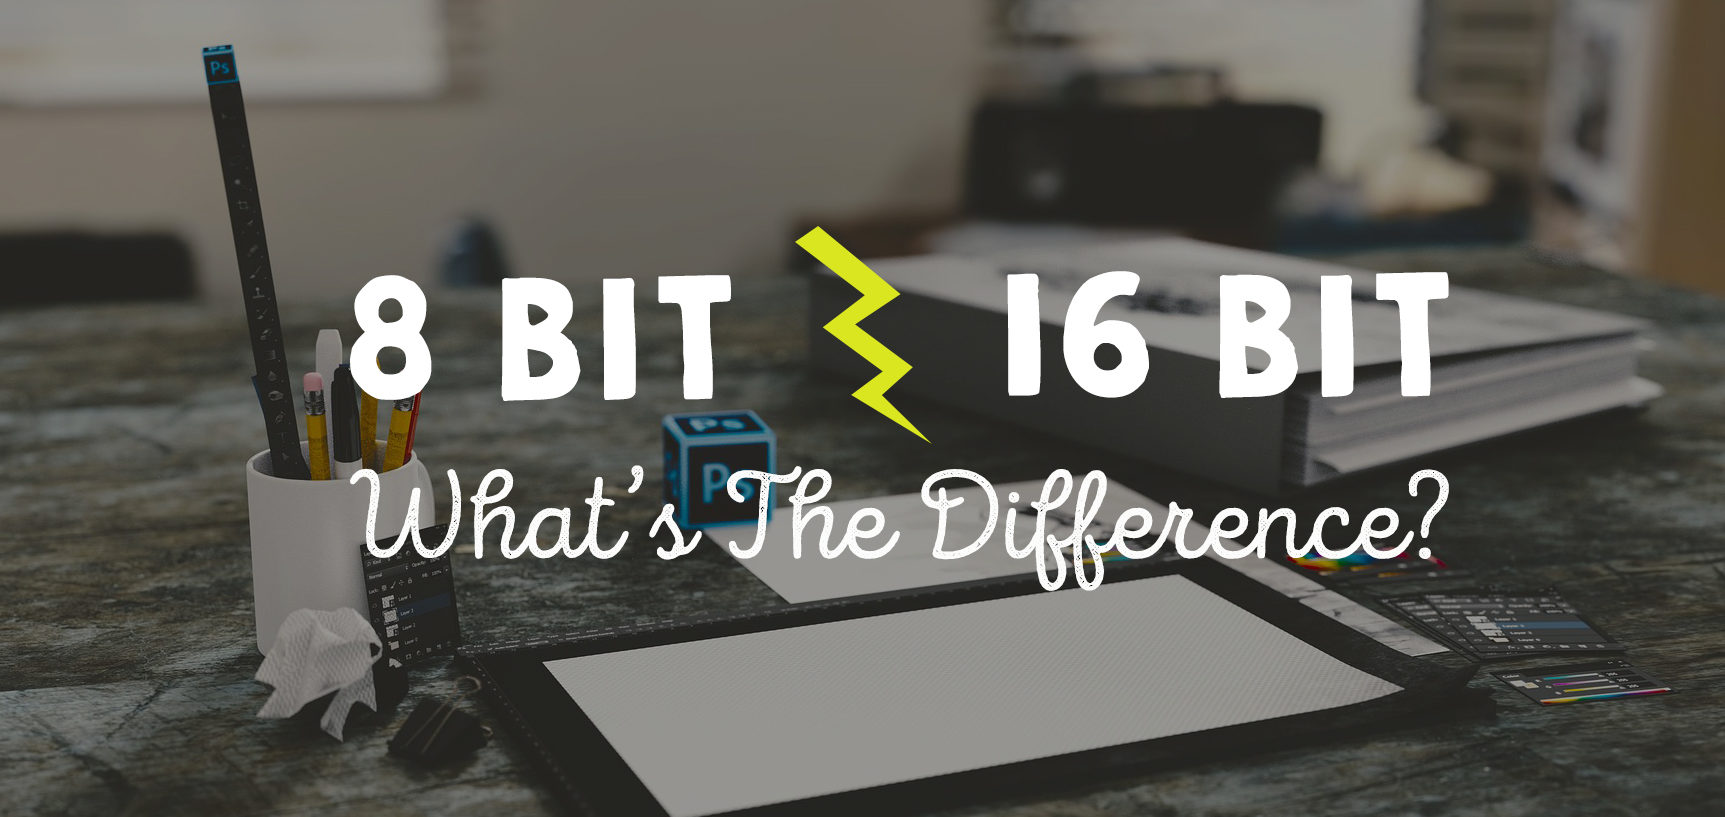 8 Bit Vs 16 Bit Images: What's The Difference & Which To Use